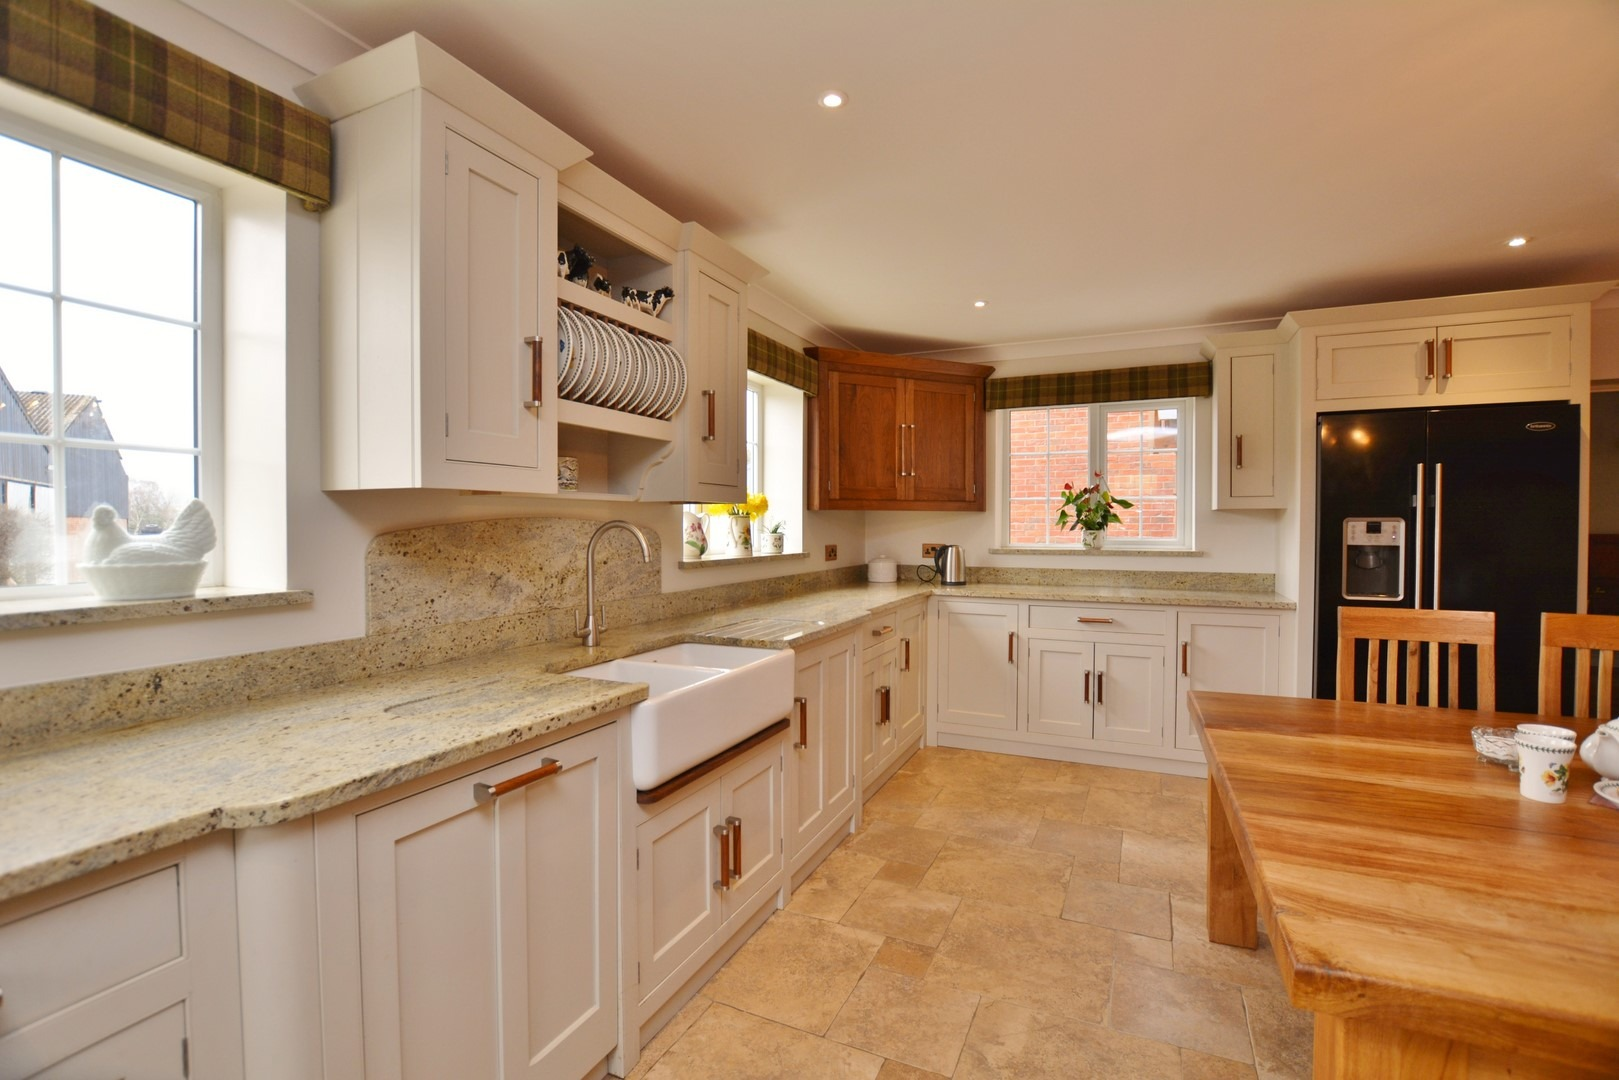 Kashmir Gold Granite Kitchen Projects Celfiderw Oakencraft